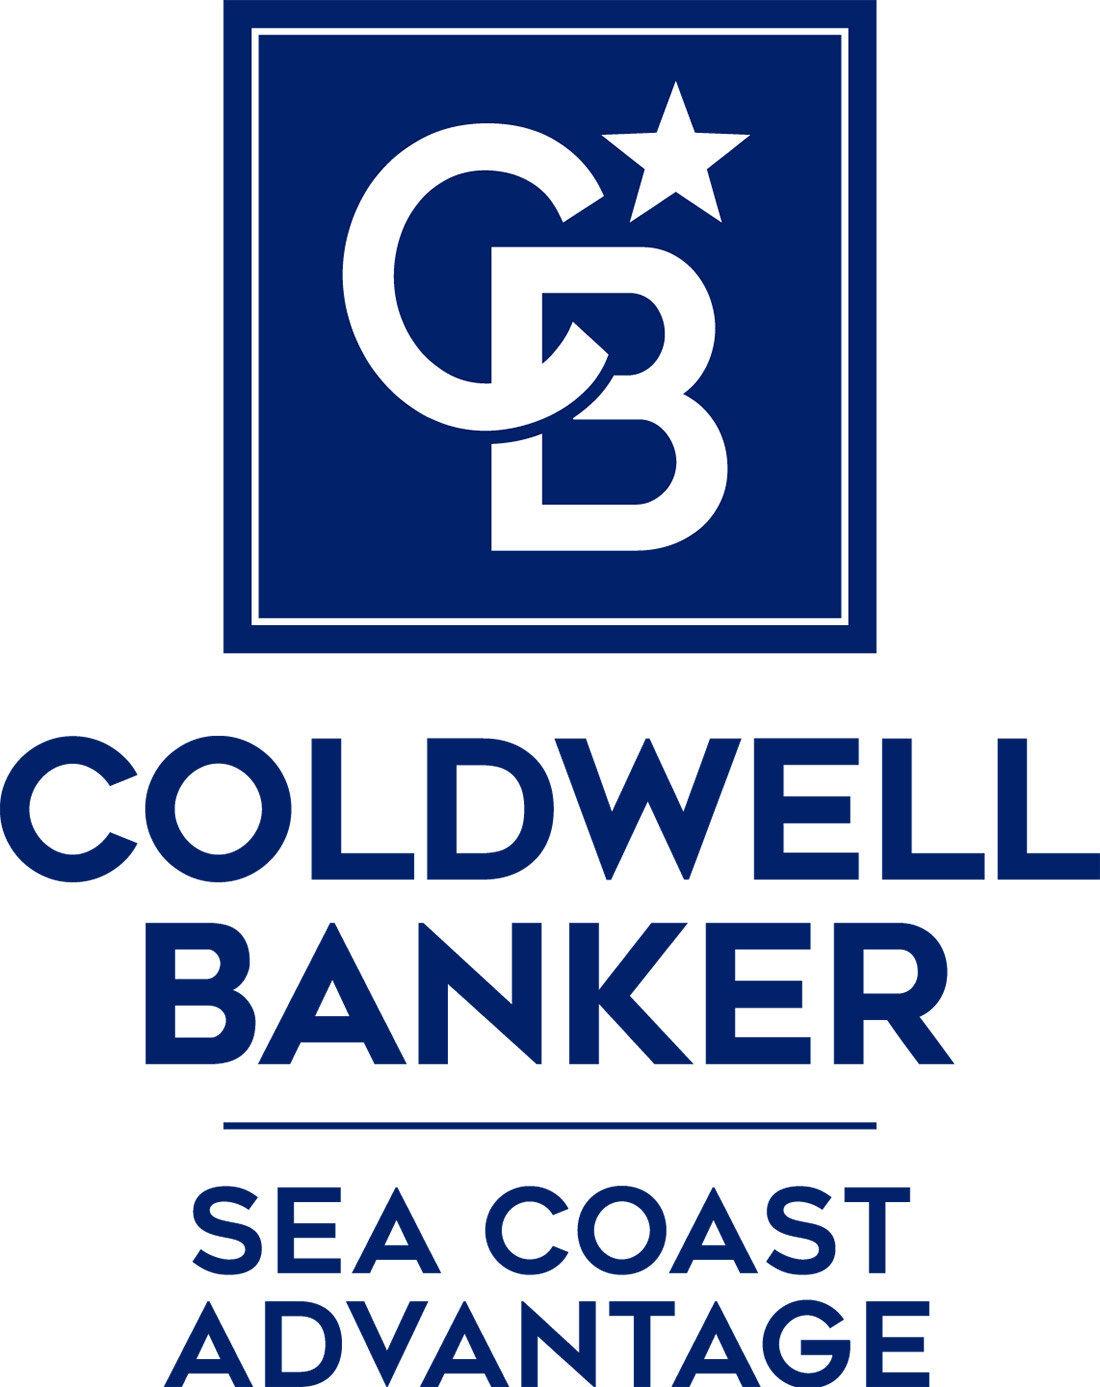 Tina Cox - Coldwell Banker Sea Coast Advantage Realty